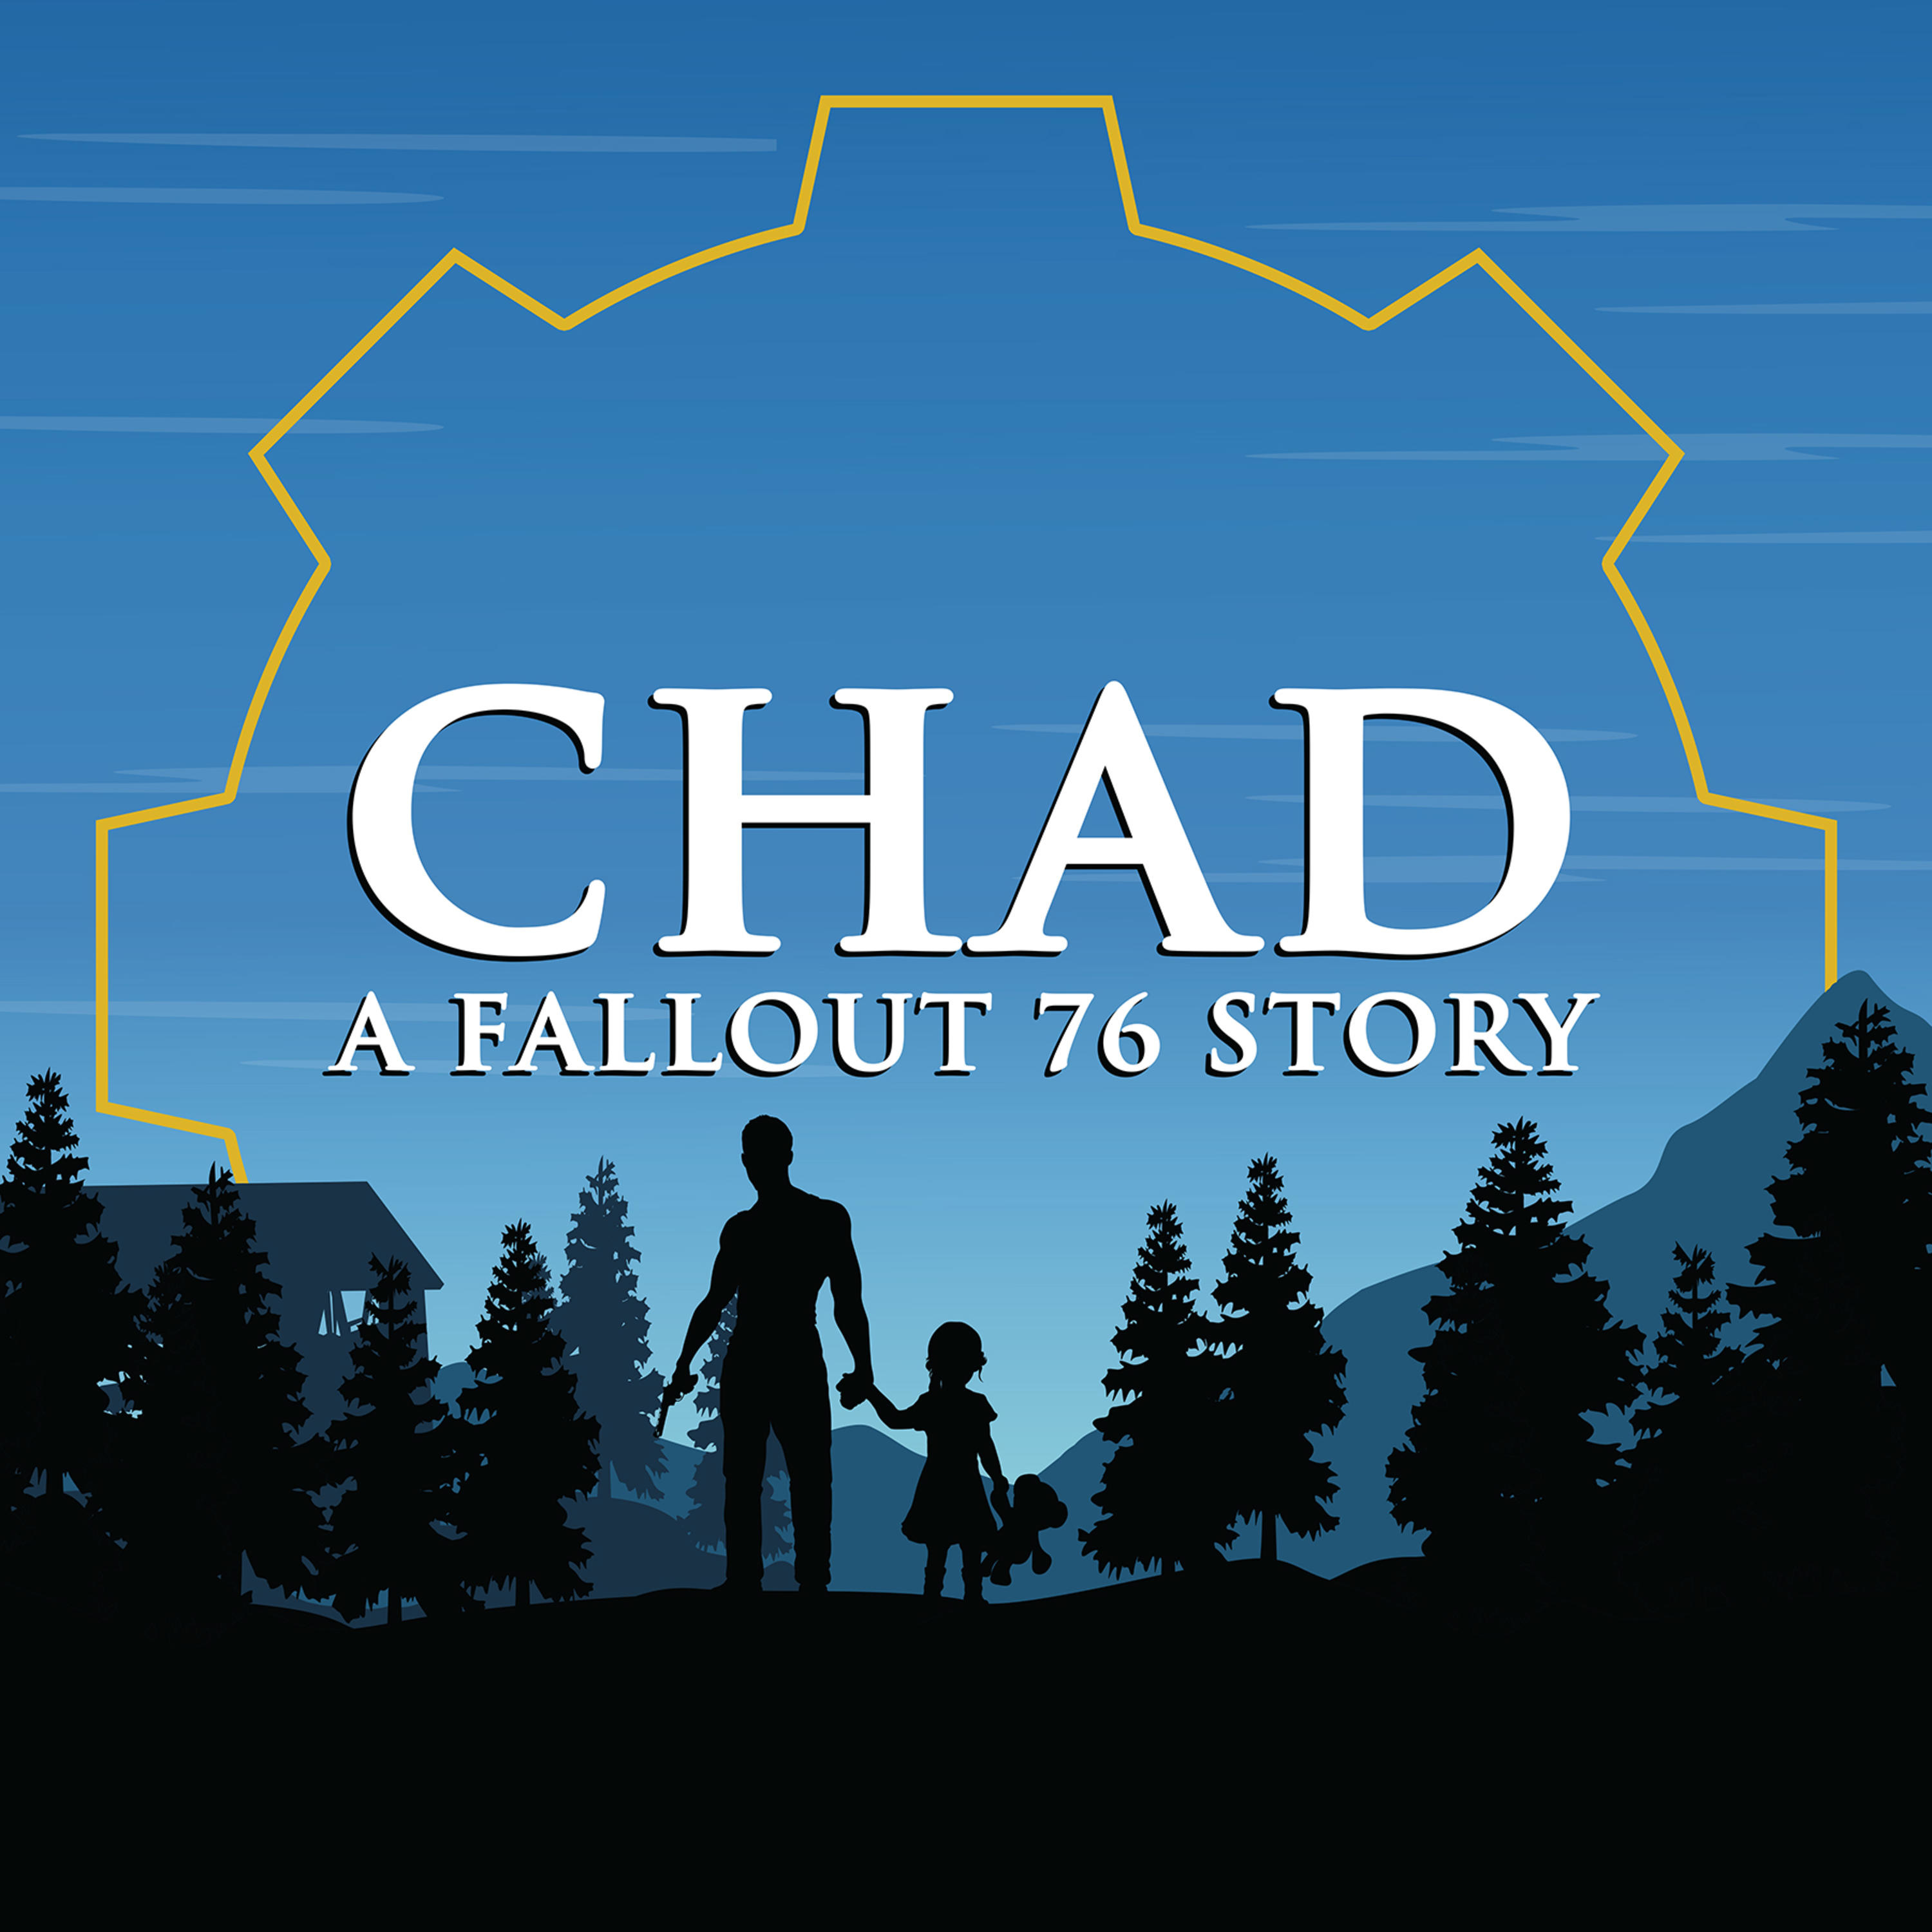 """CHAD: A Fallout 76 Story"" Podcast"